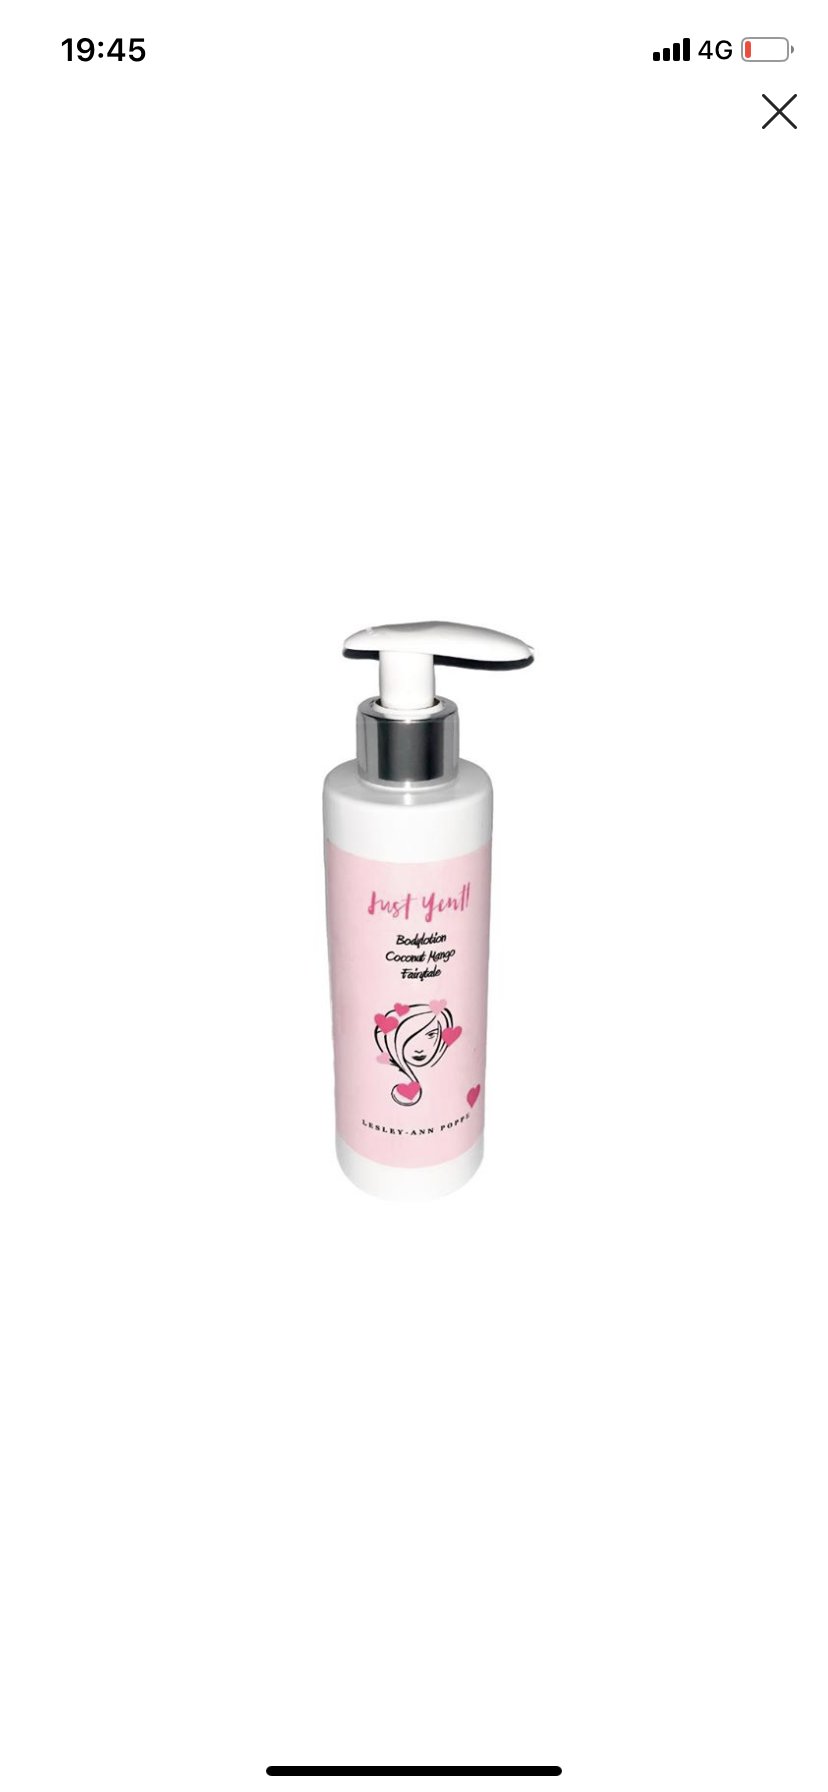 PP Body Lotion Lesley-Ann X Just Yentl